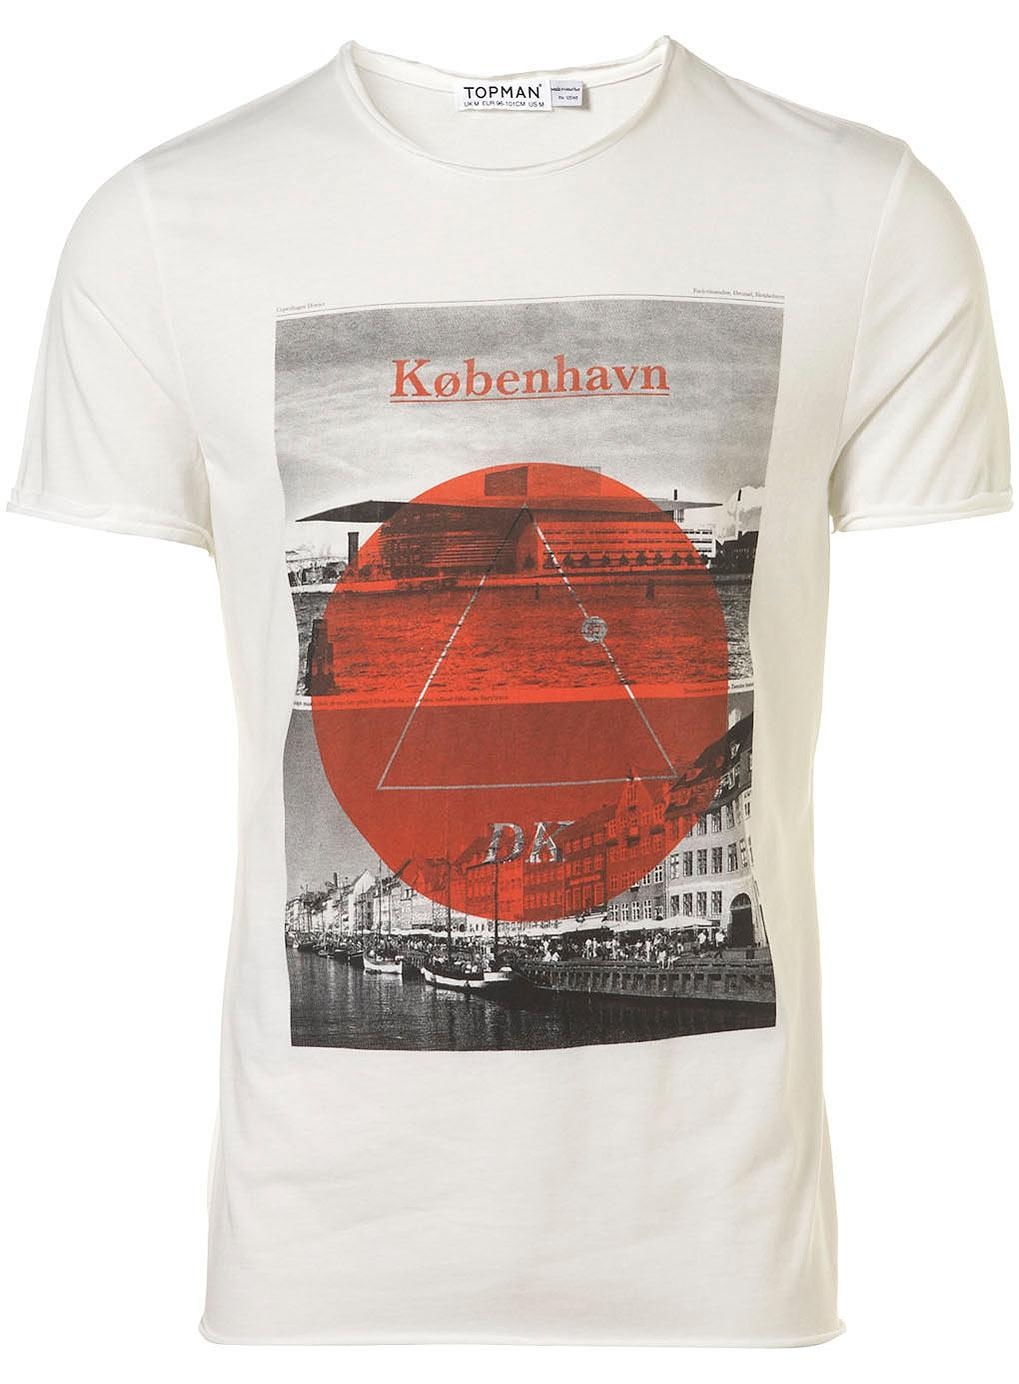 Off Kobenhaven T-Shirt - Sale - Sale & Special Offers - TOPMAN